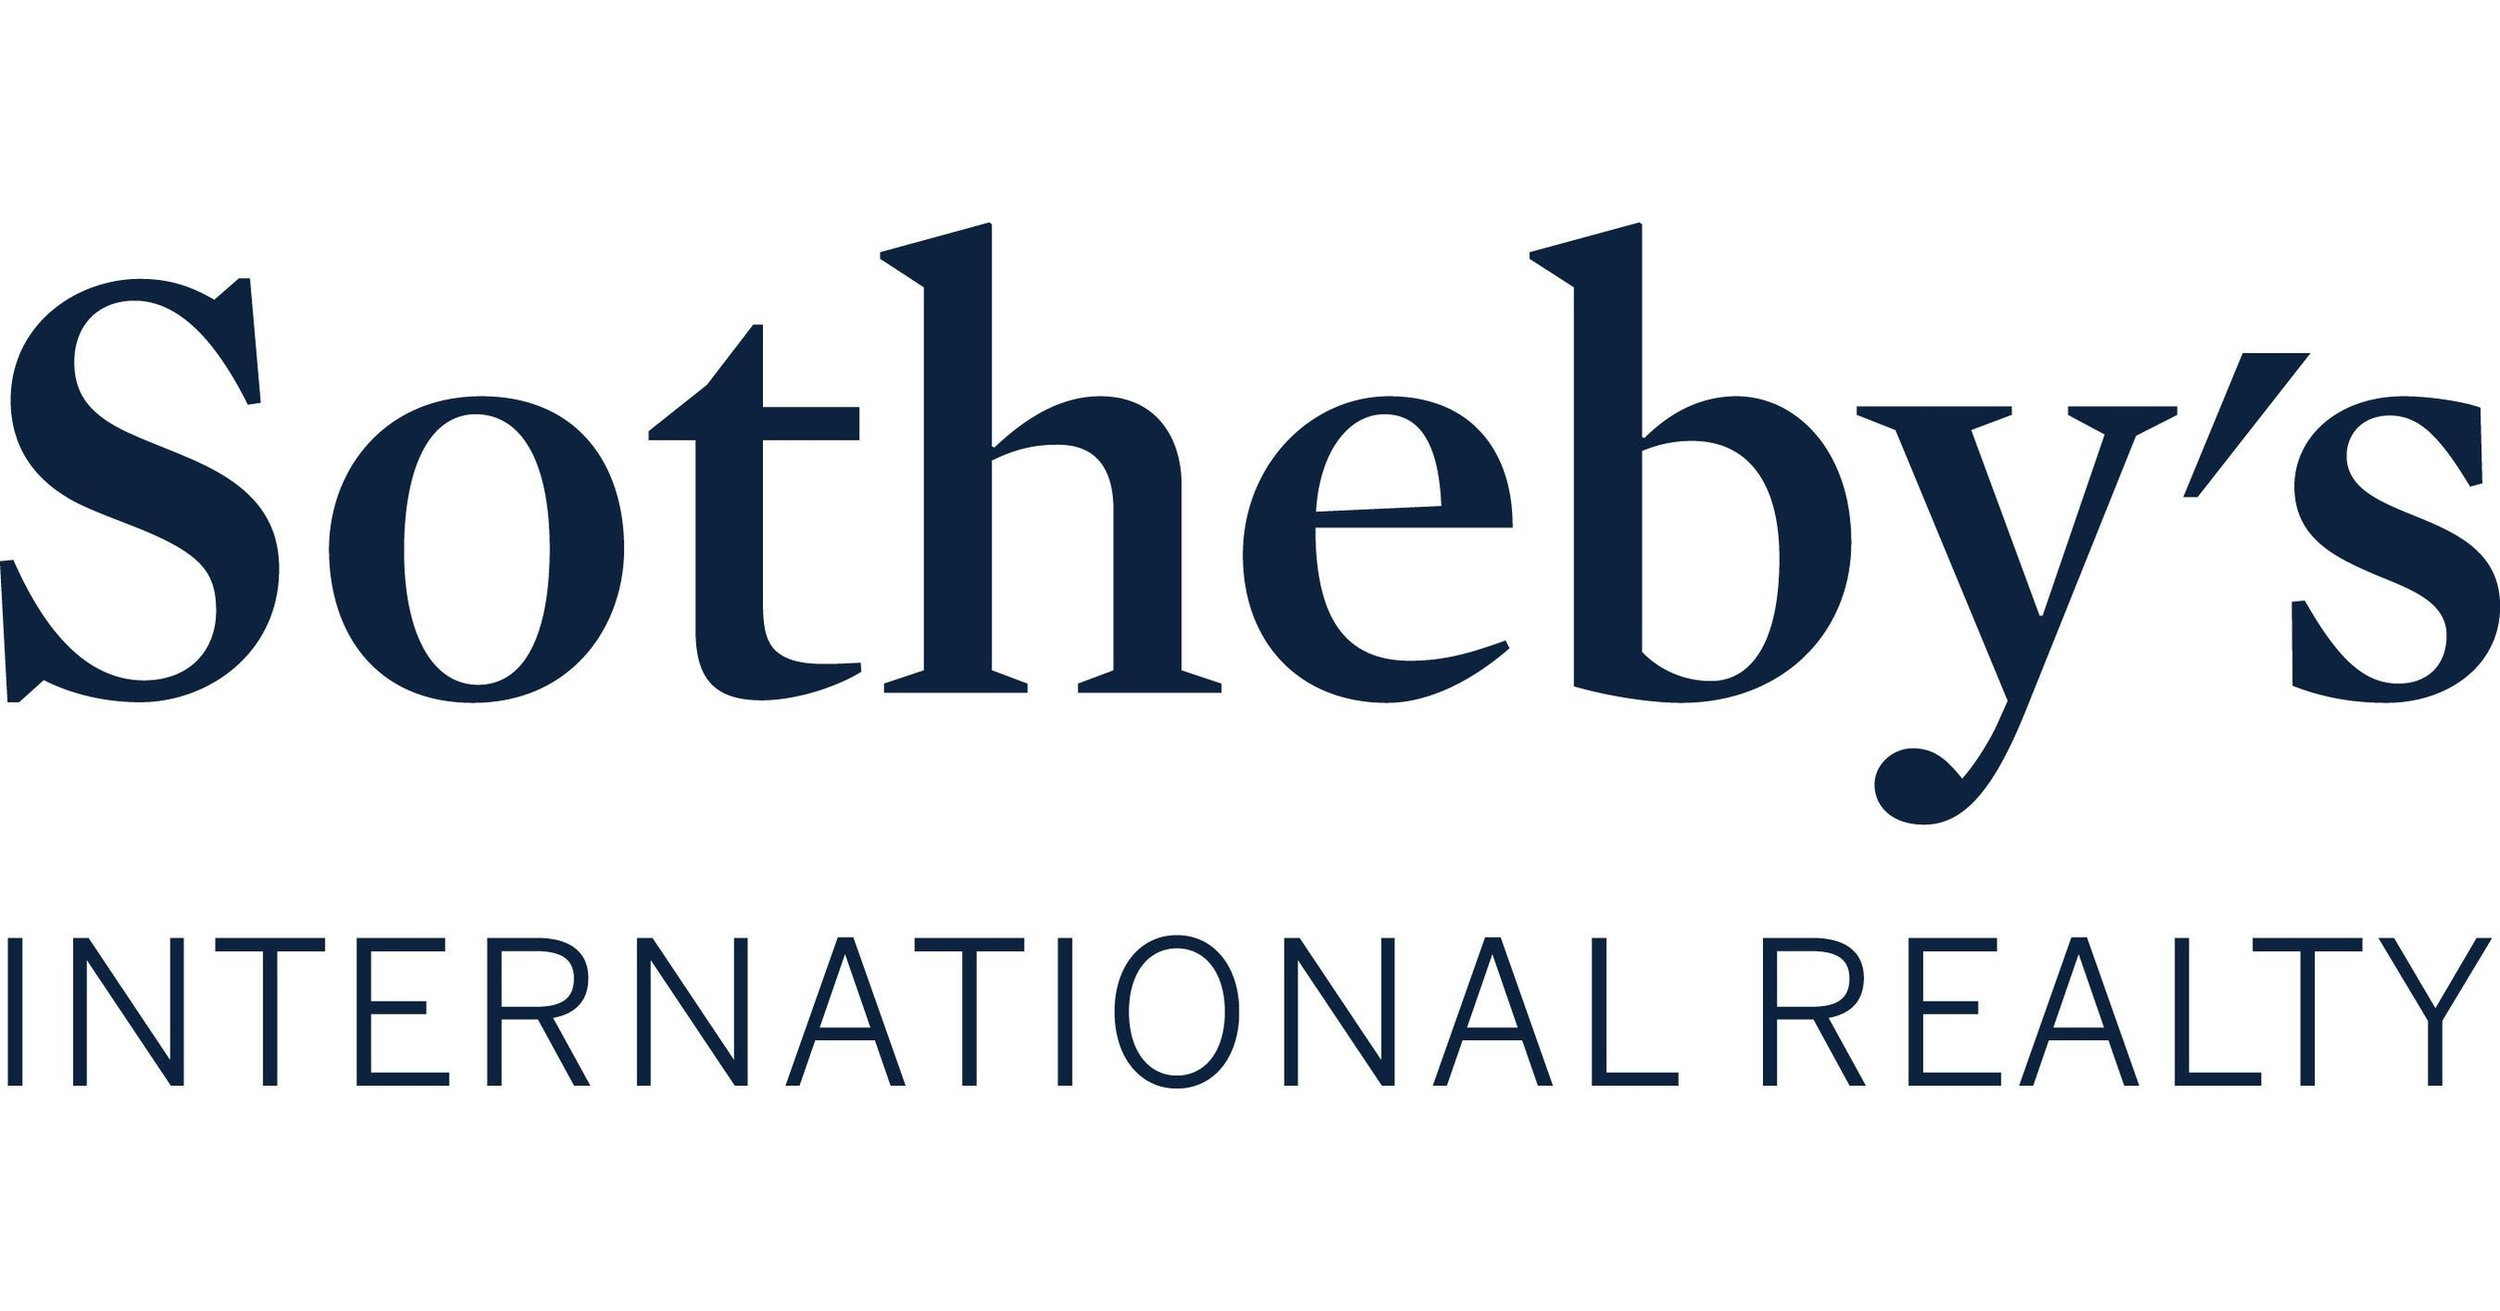 SOTHEBY'S_INTERNATIONAL_REALTY_LOGO.jpg